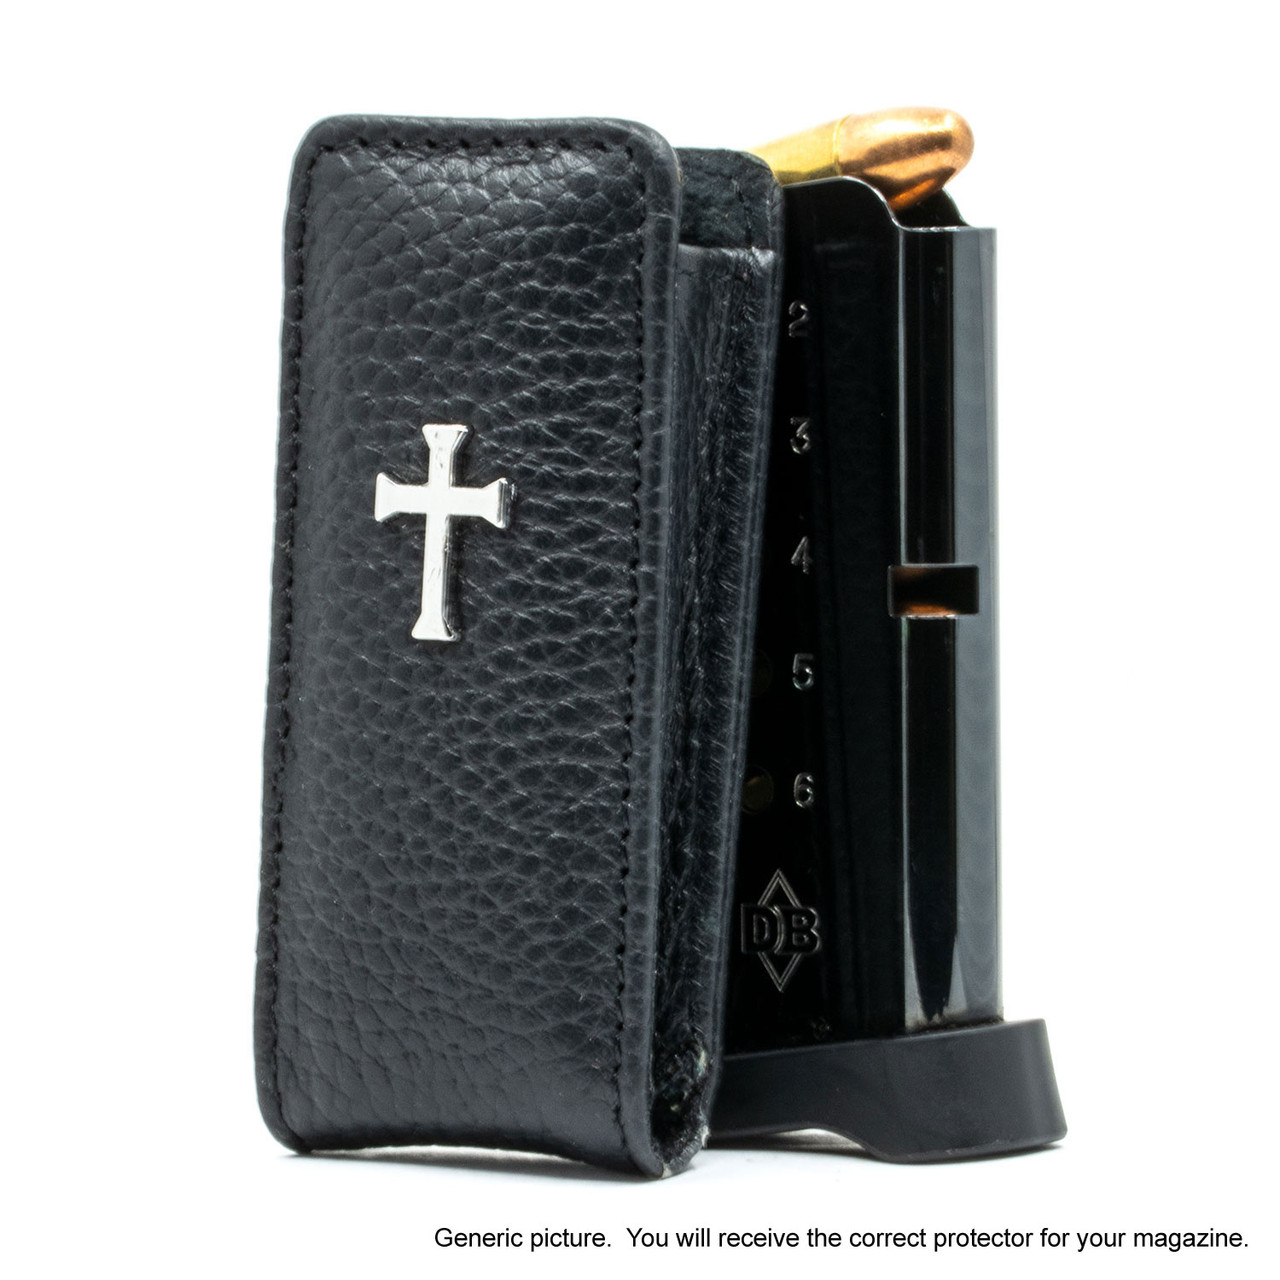 CZ 75D Compact Black Cross Magazine Pocket Protector